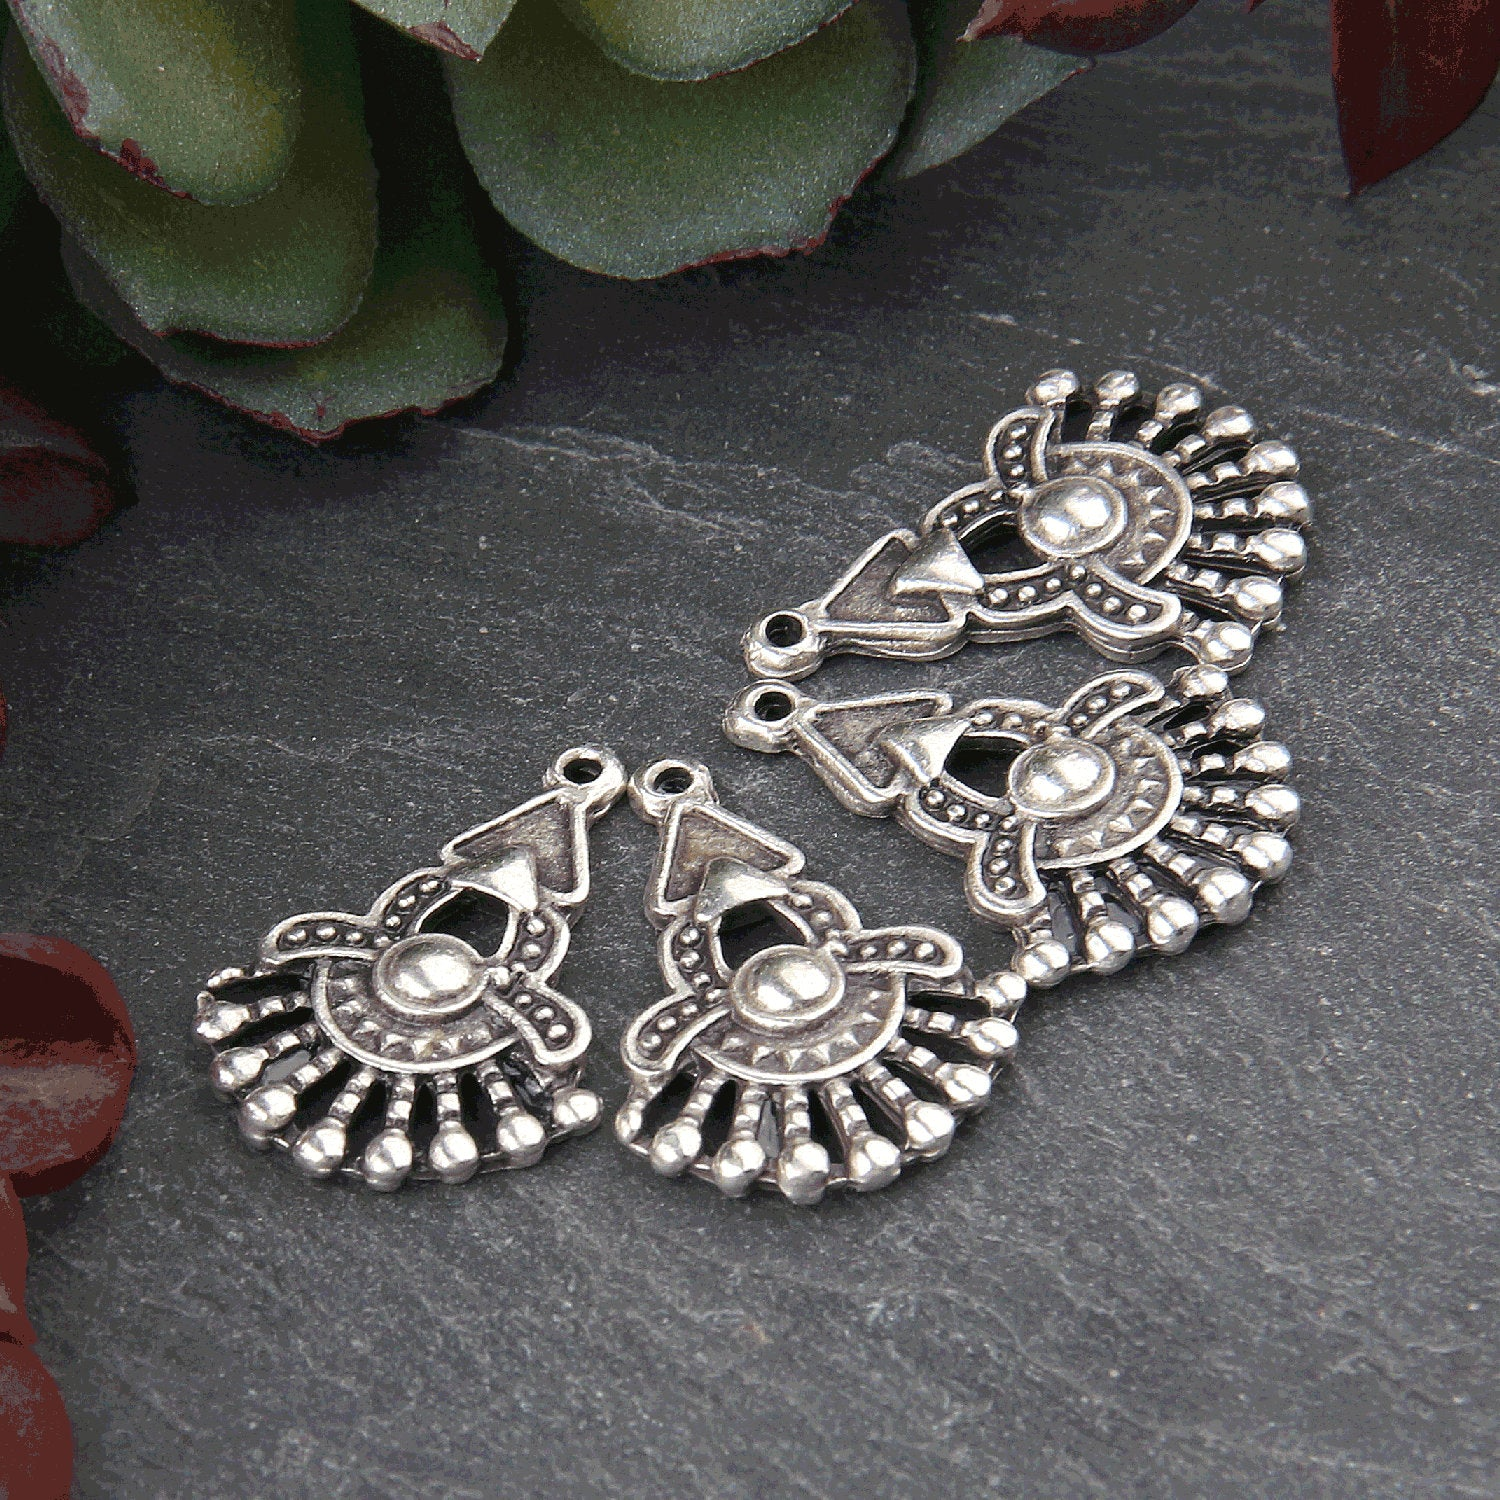 Silver Tribal Charms, Silver Ethnic Charms, Fan Shaped Charms, 4 pieces // SCh-204